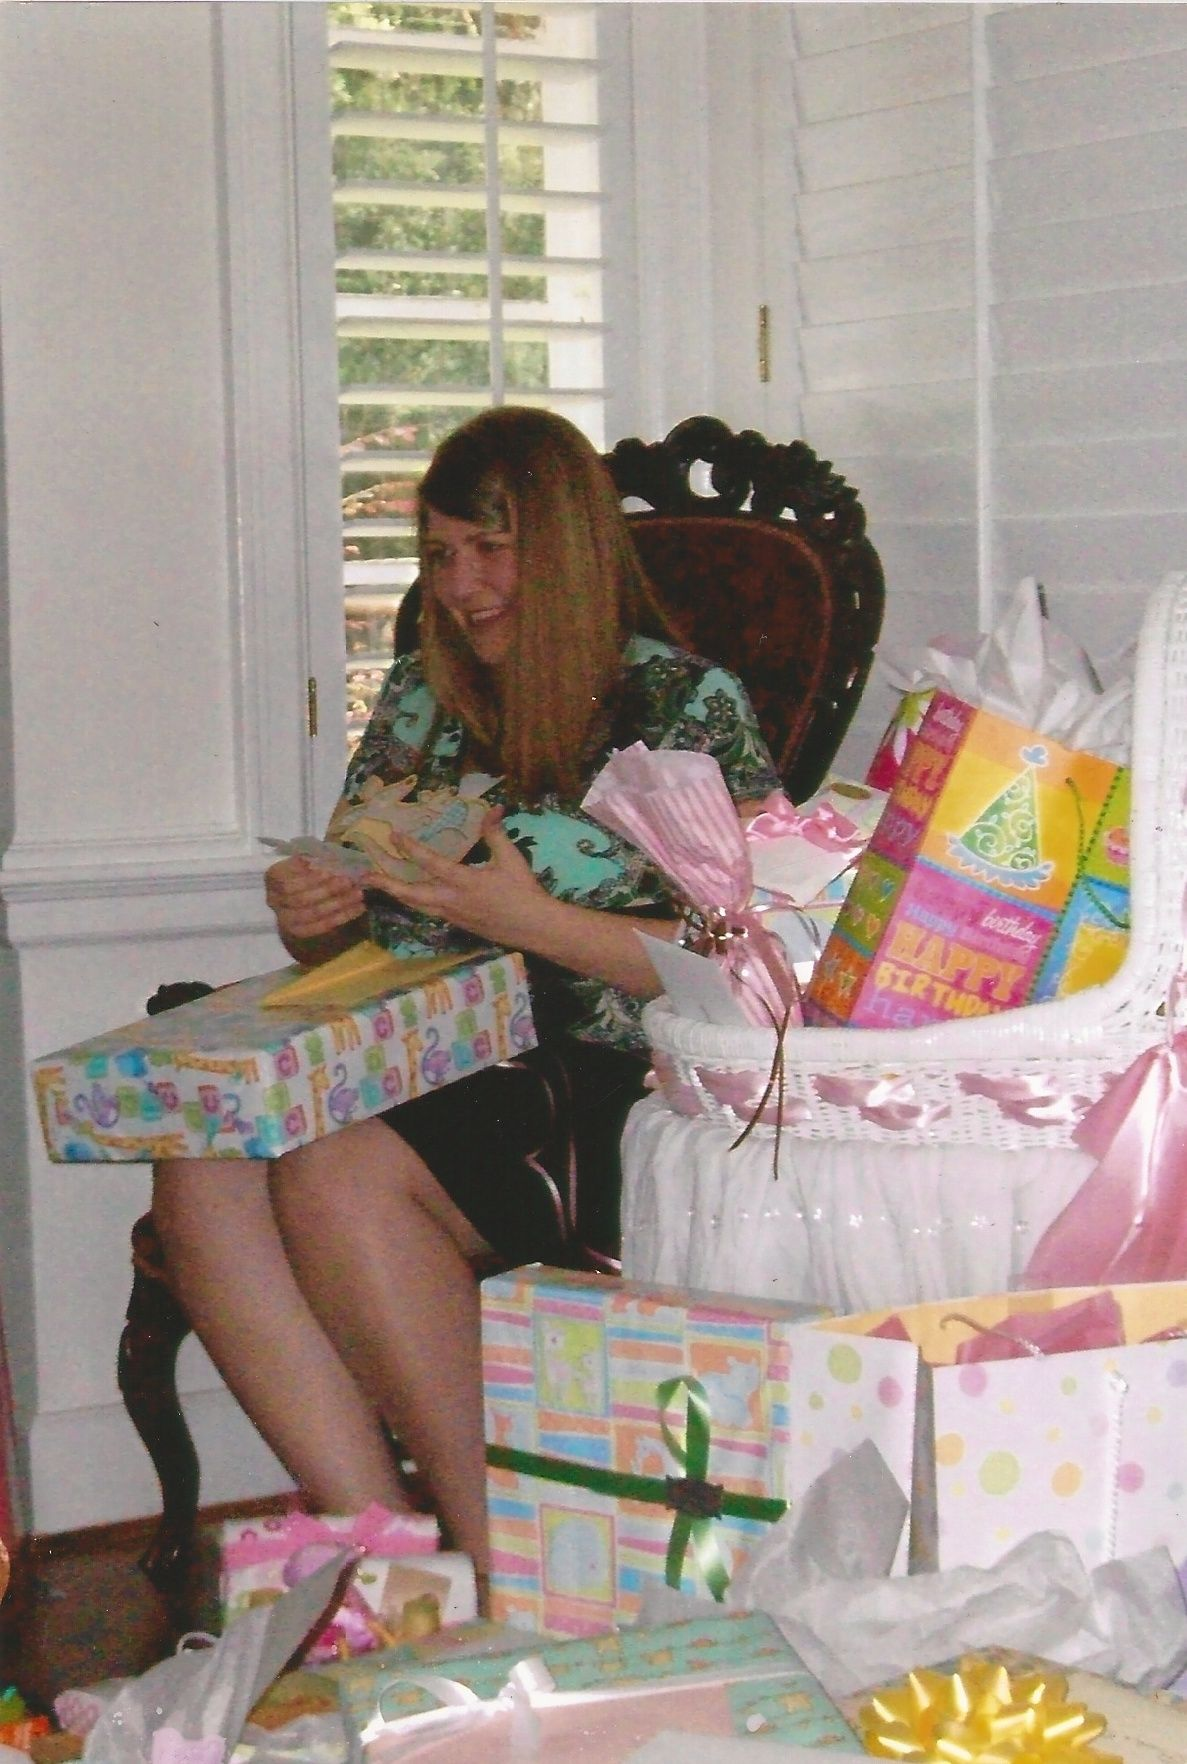 Brooke in chair at baby shower